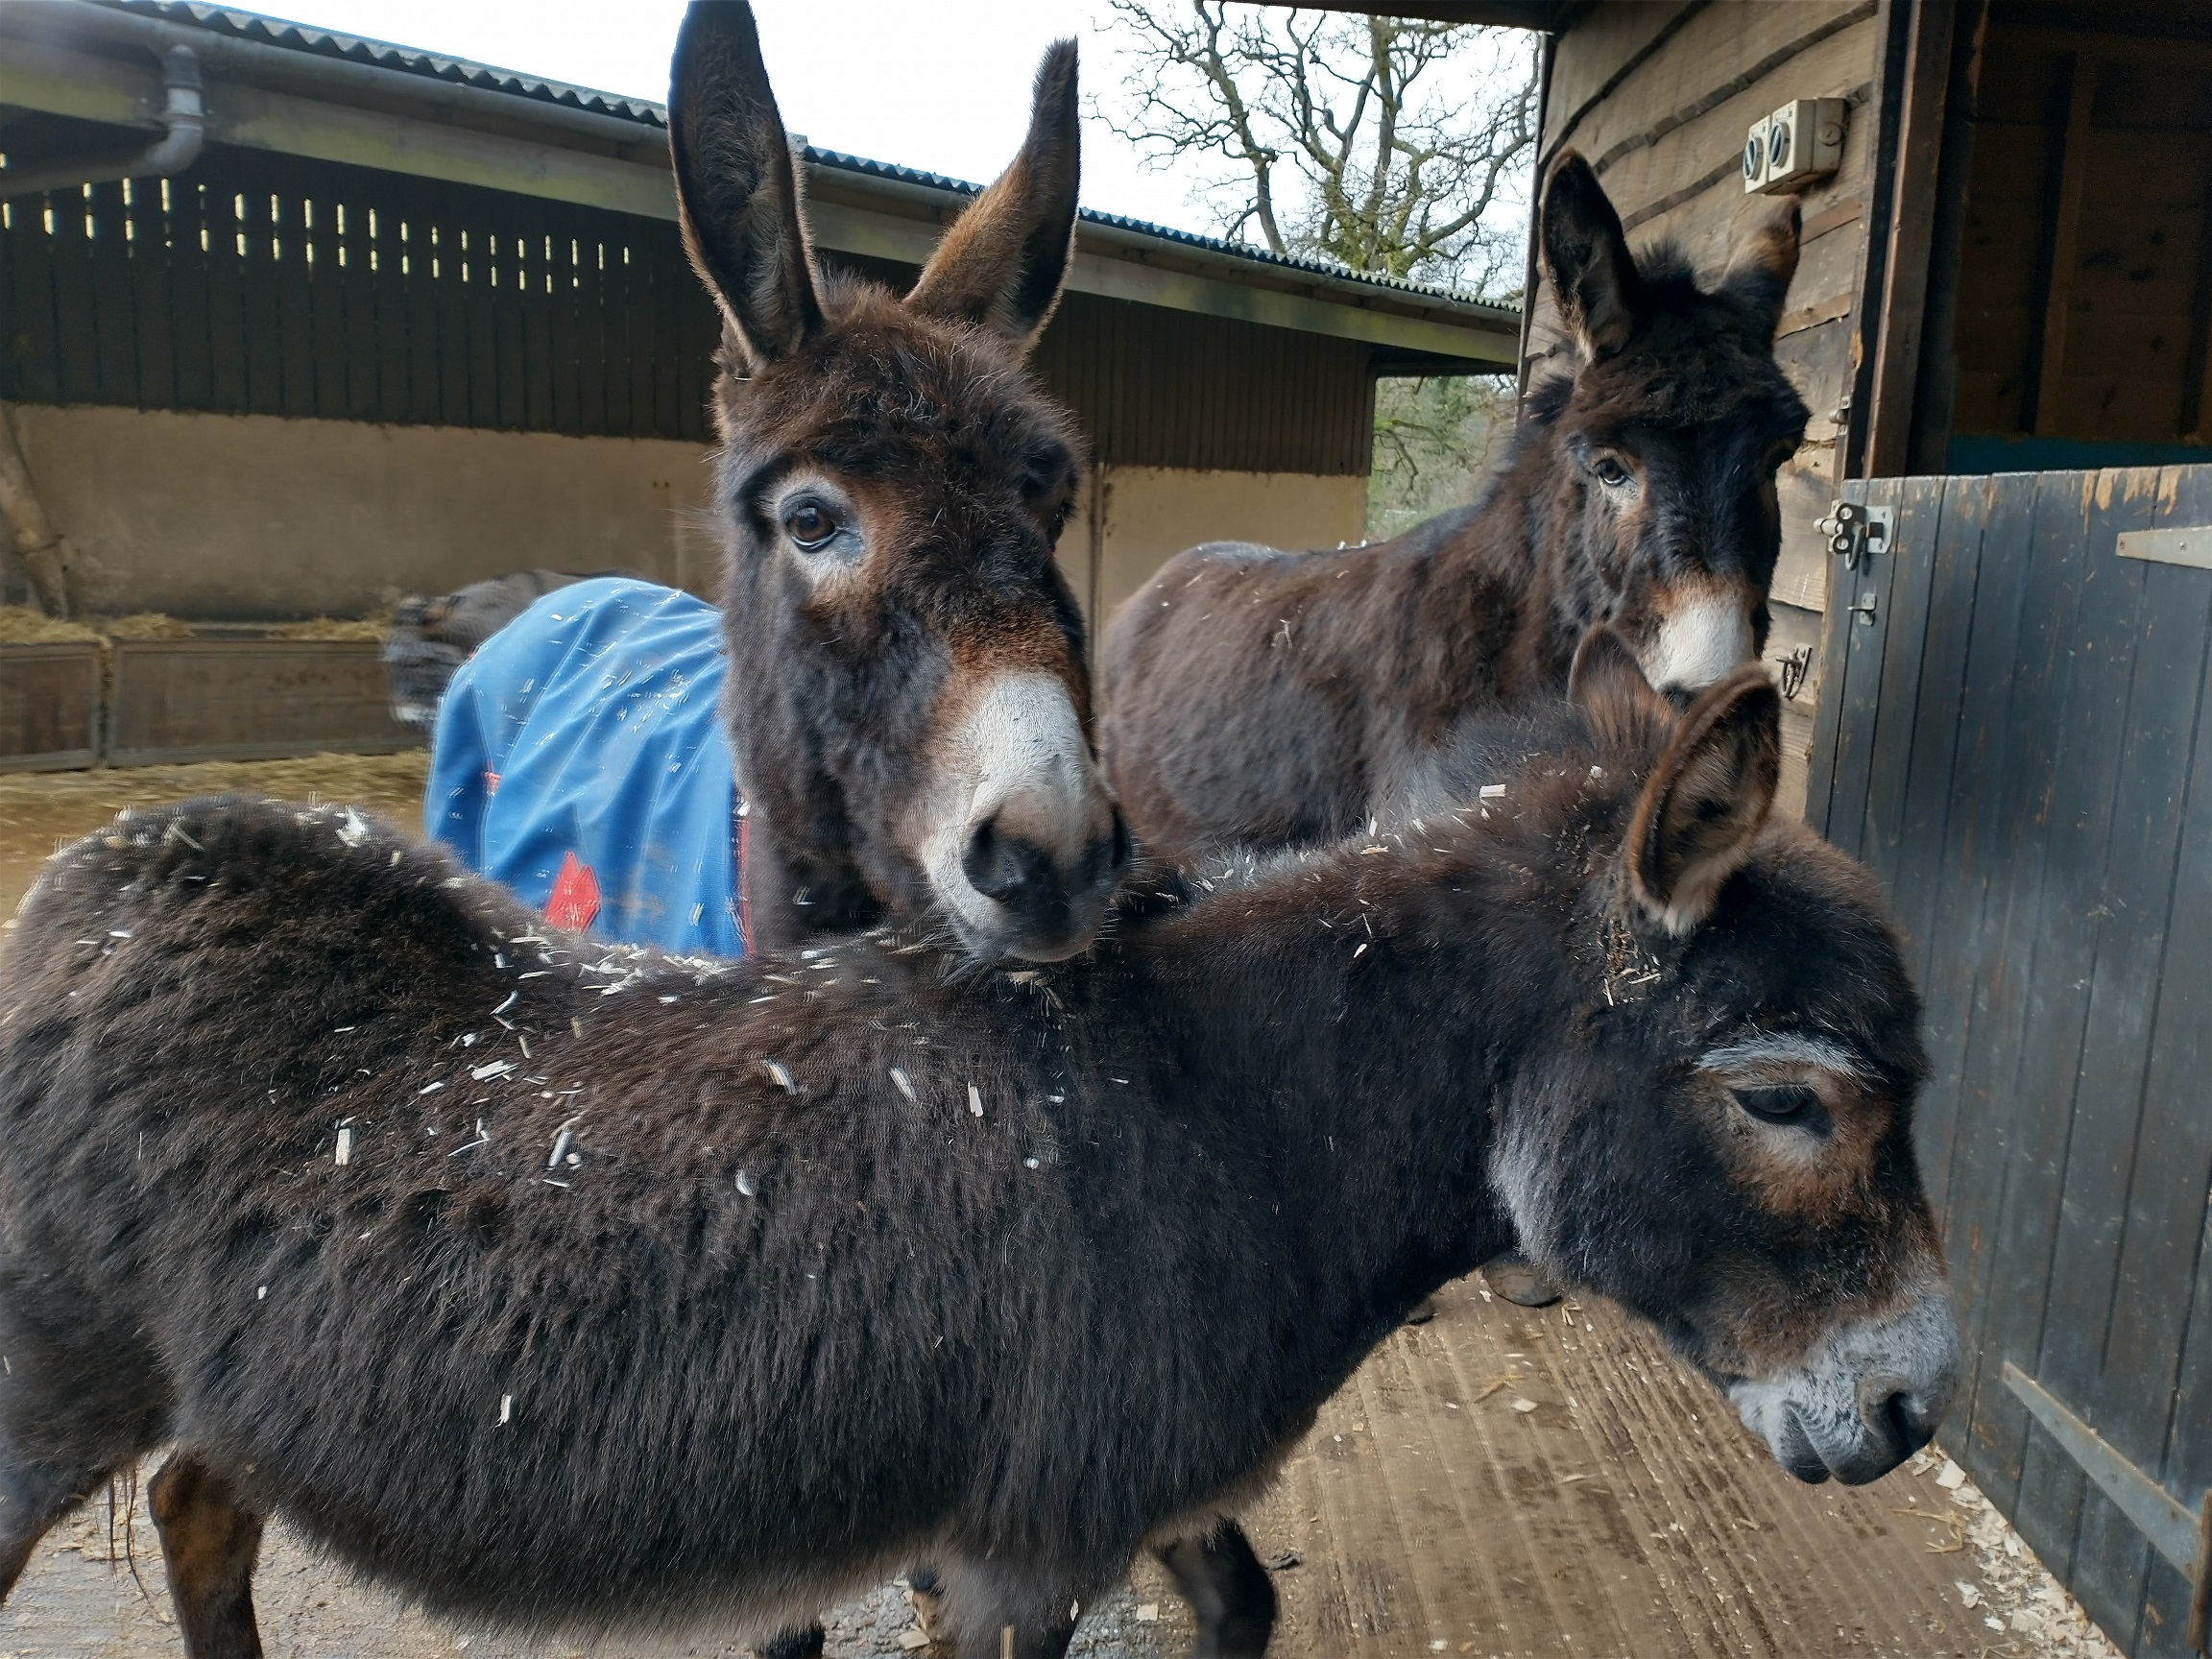 Moment of hope in sadness as rescue donkey bonds with new friend after  companion's death - Horse & Hound